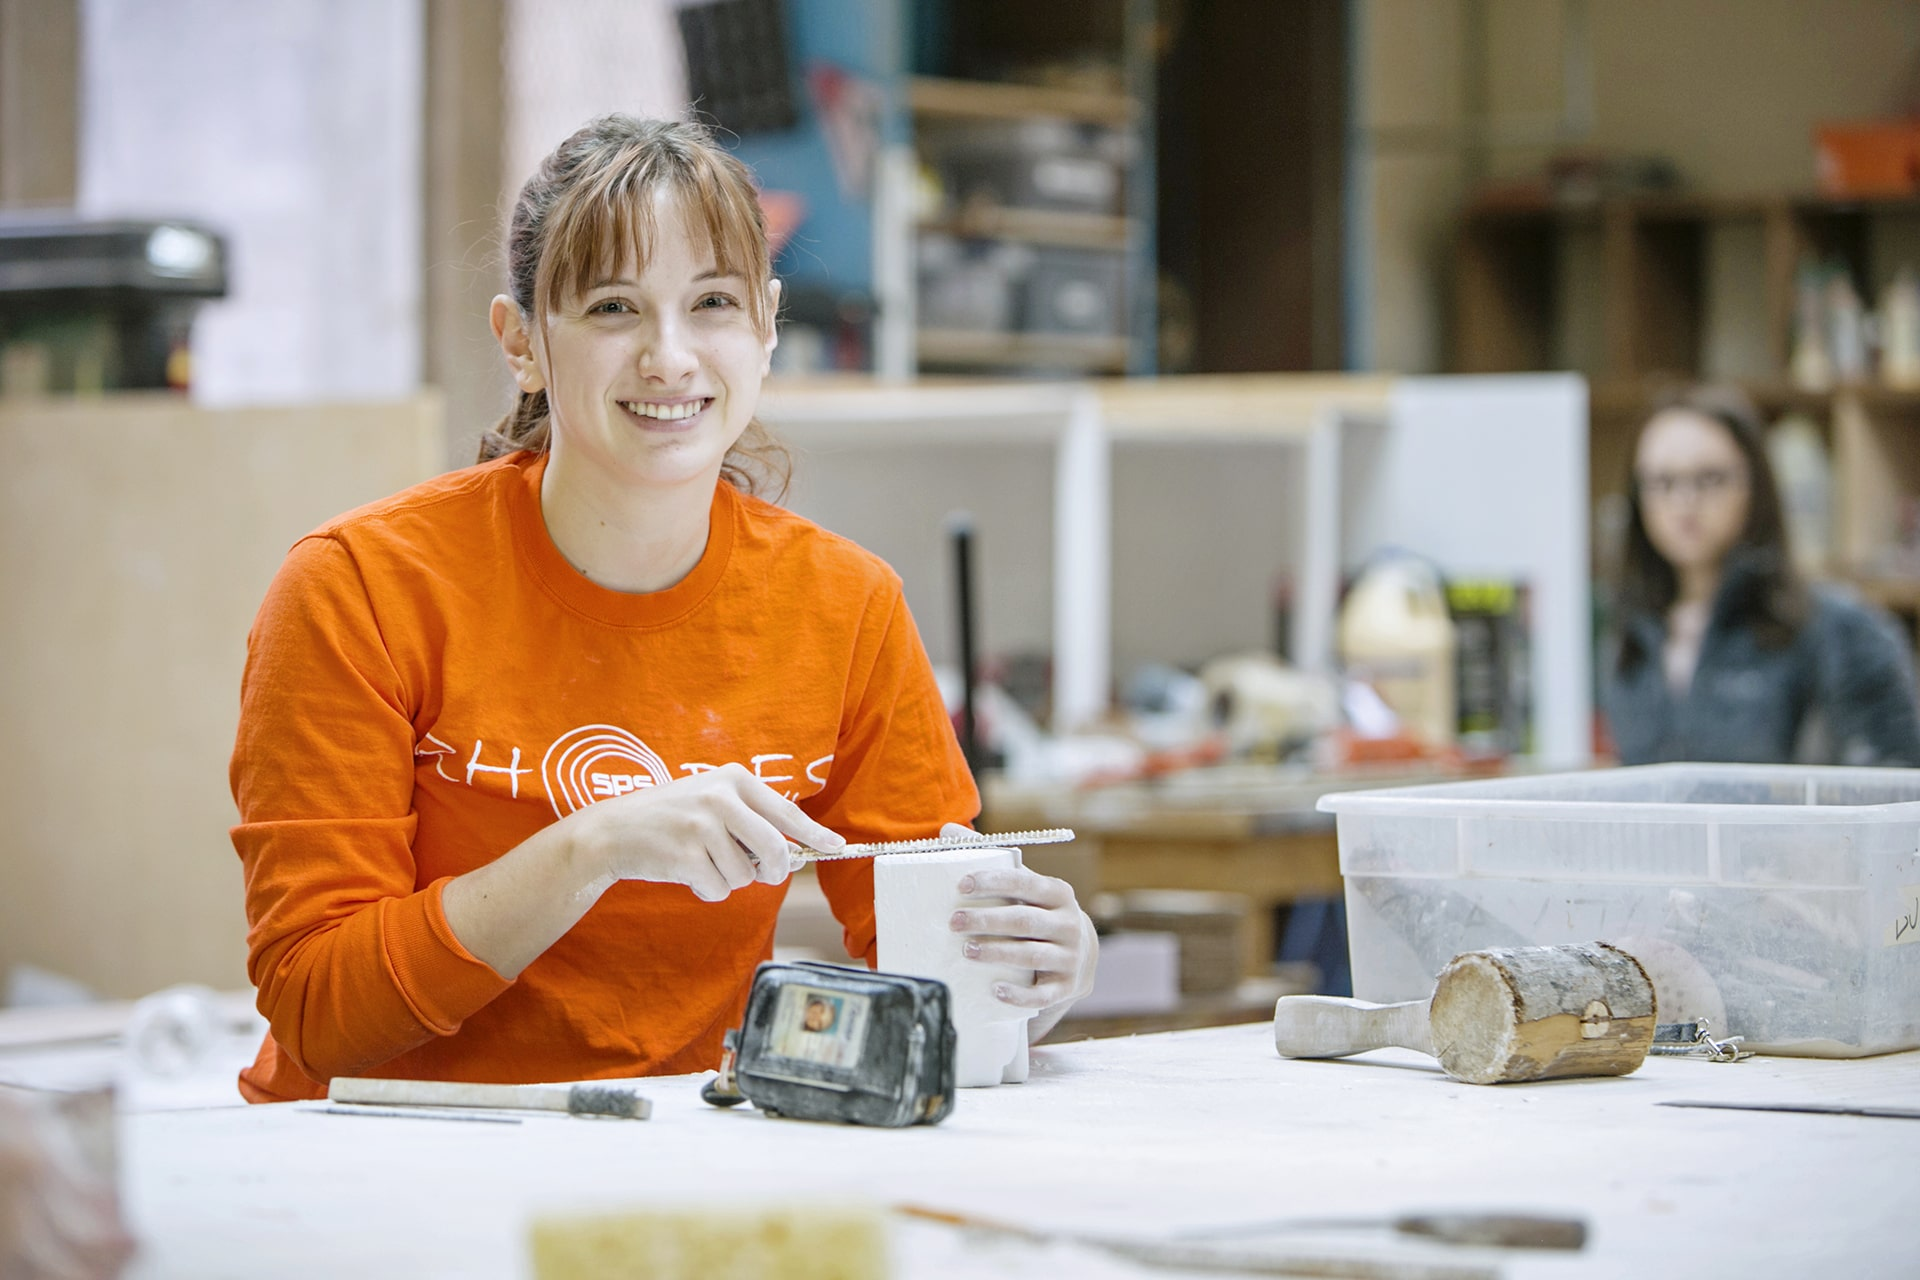 A young woman in an orange shirt files down the end of a mold.